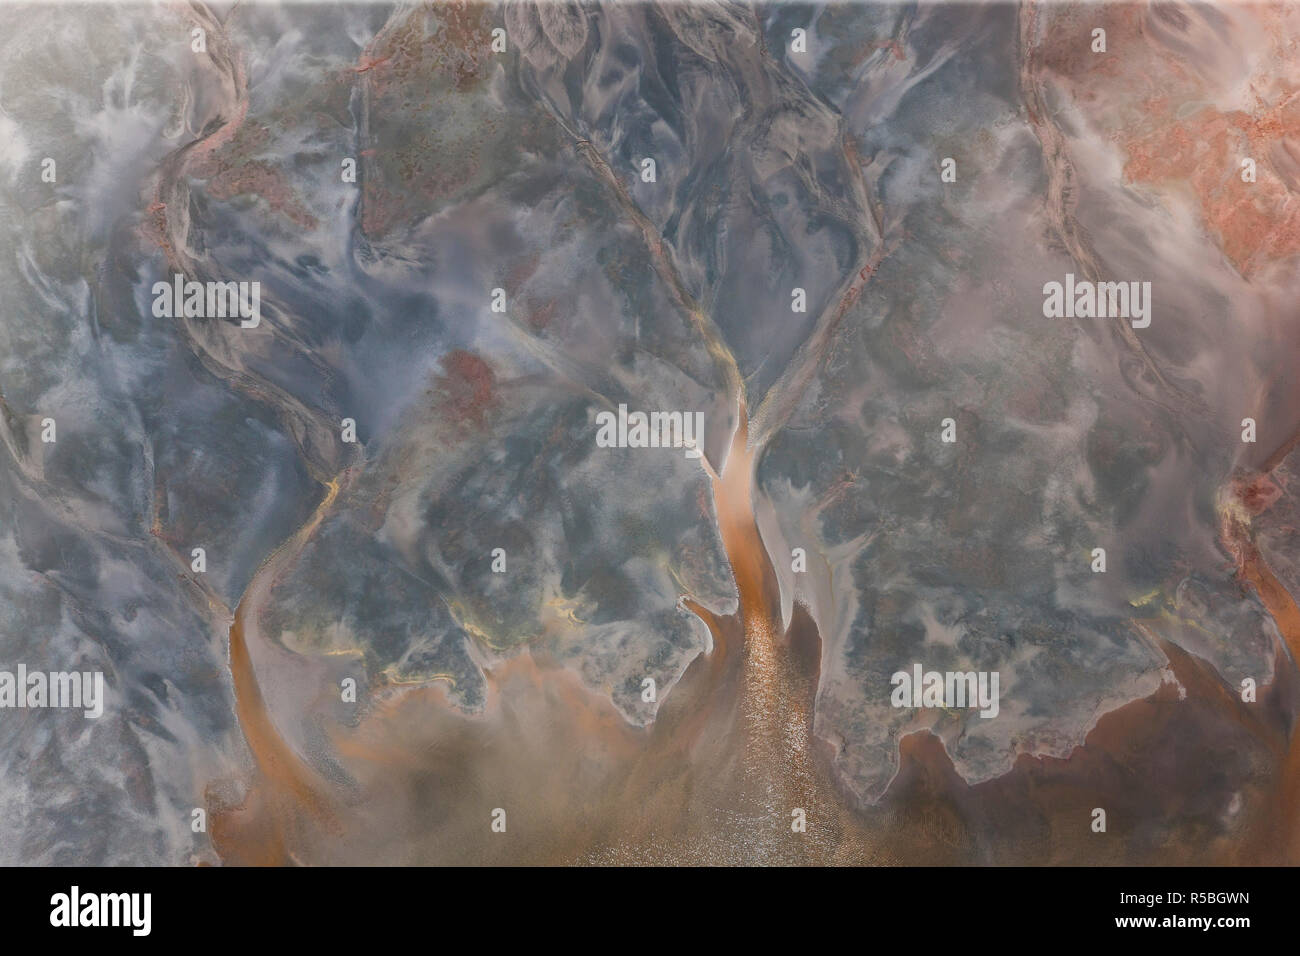 Aerial shot of oxidized iron minerals in water in old mining area, Rio Tinto. Huelva Province, Spain - Stock Image